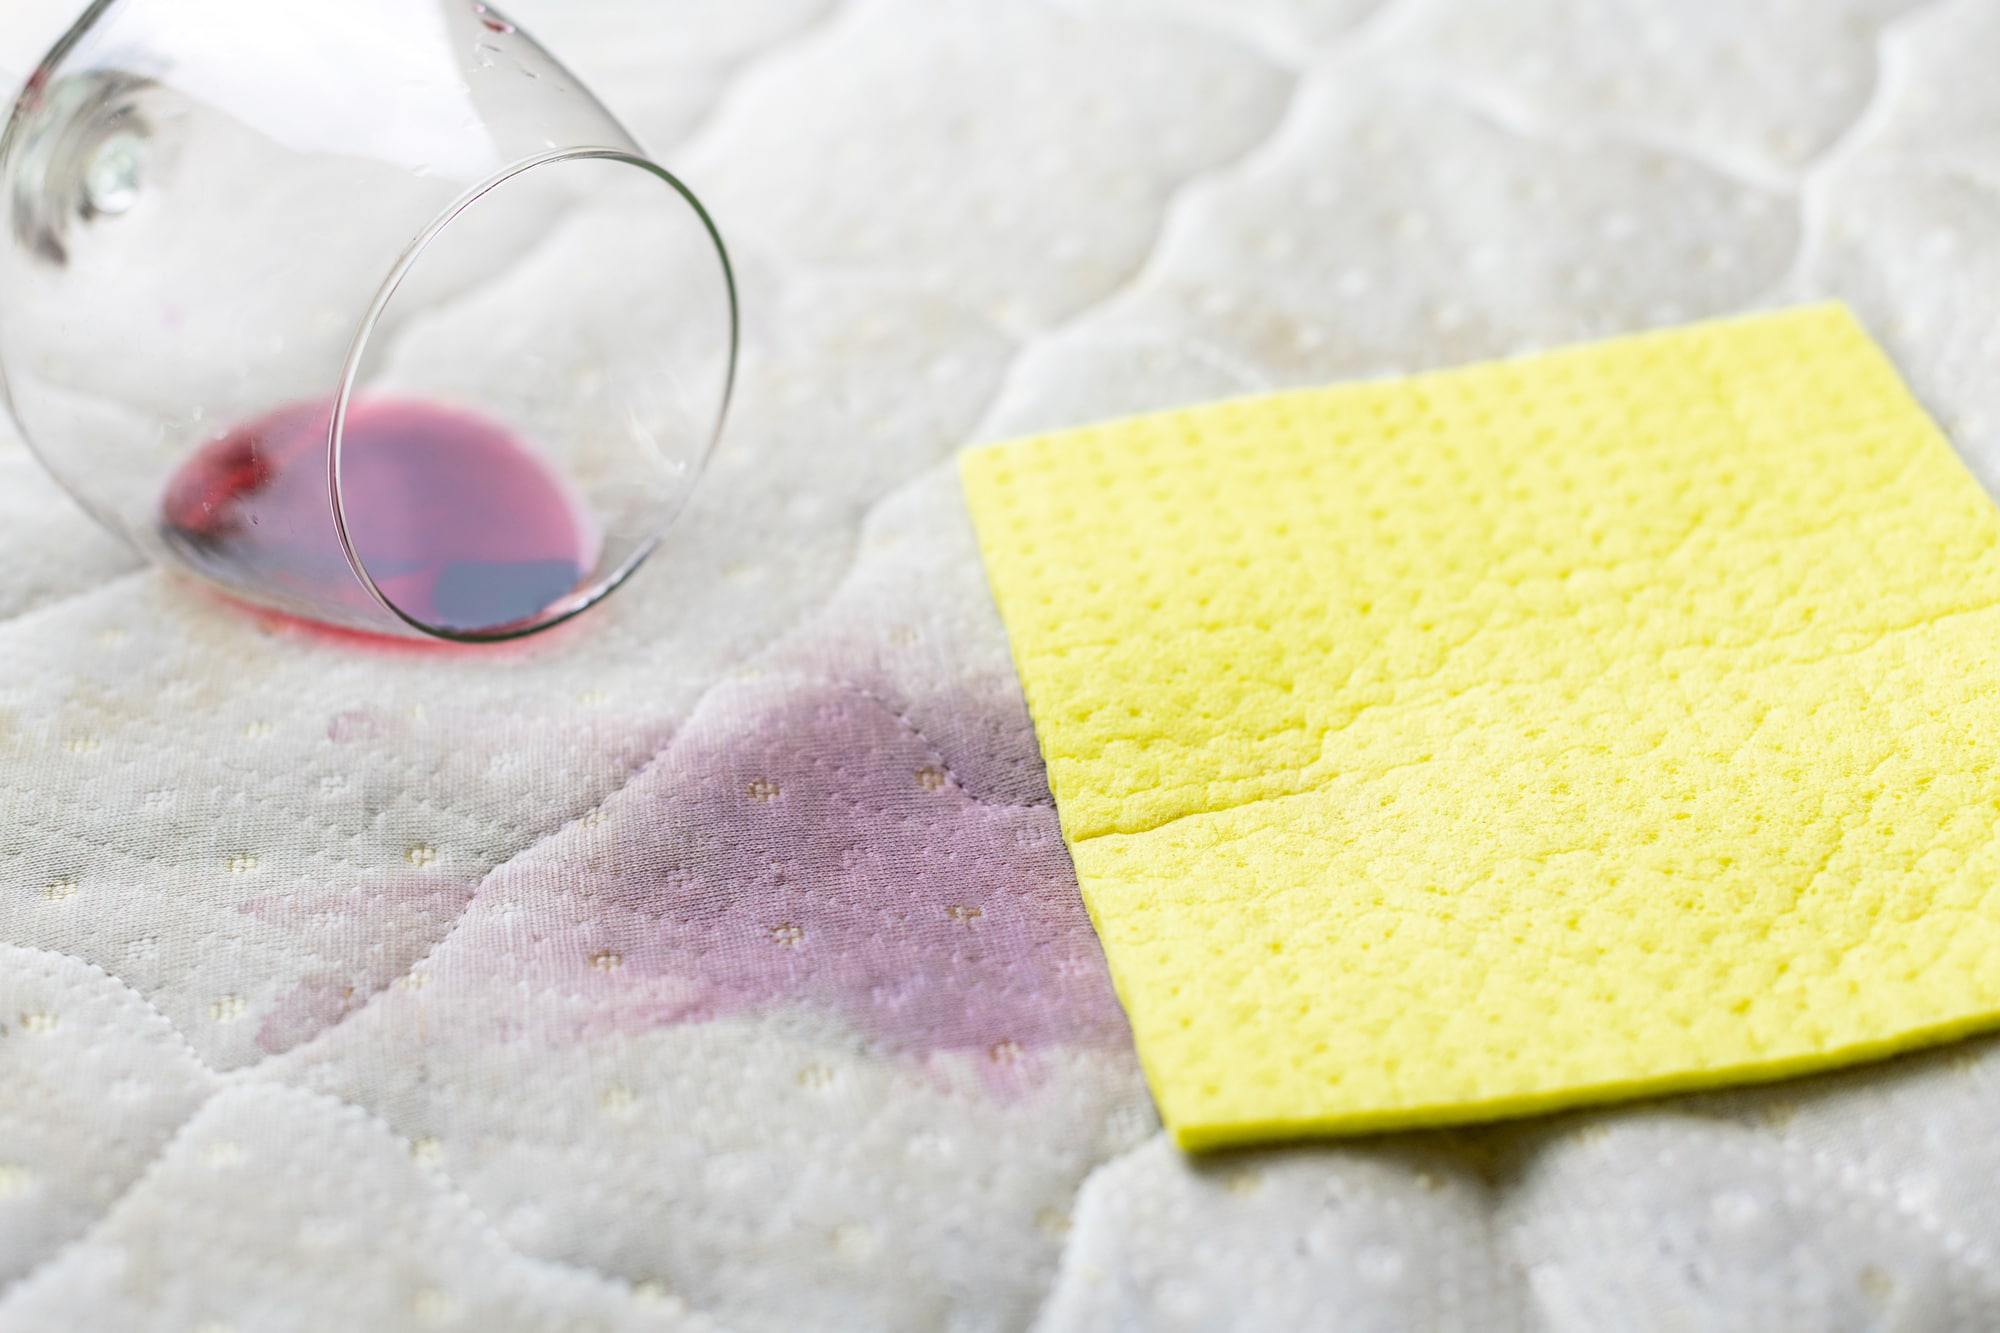 wine stain and sponge on a mattress